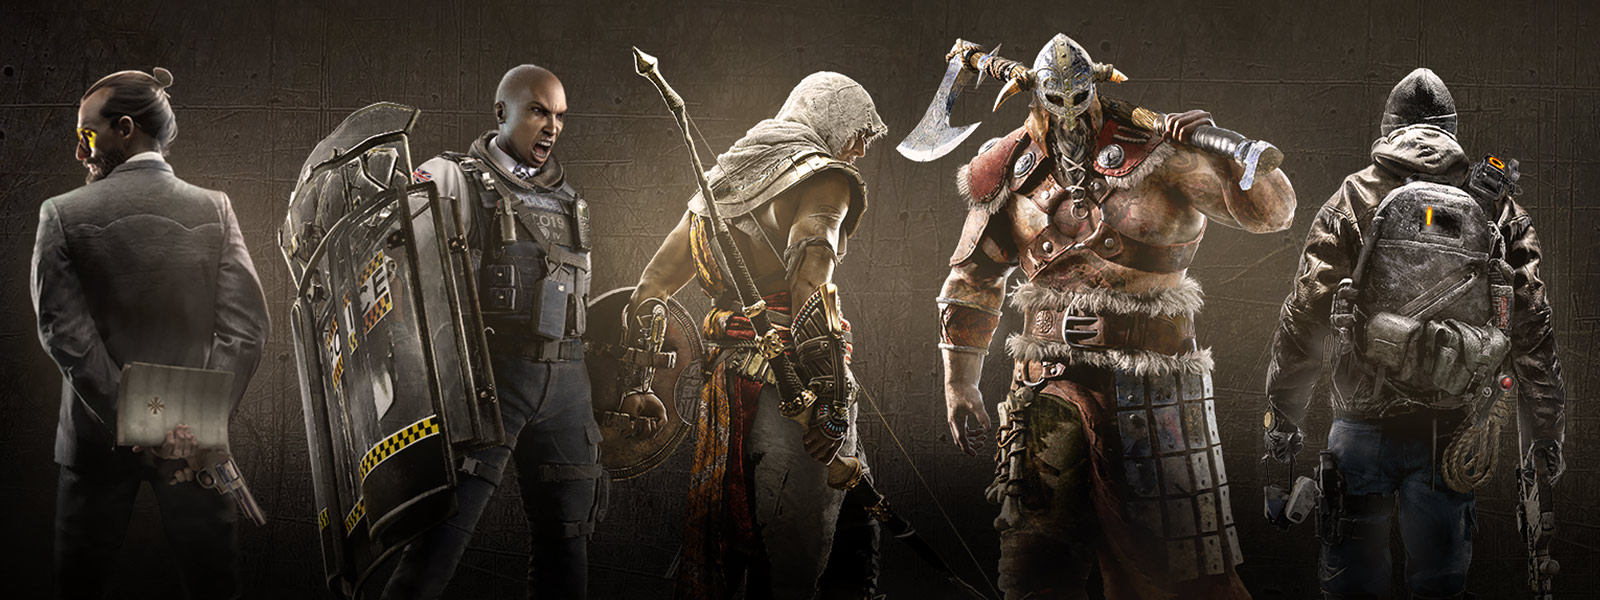 various characters from Ubisoft titles